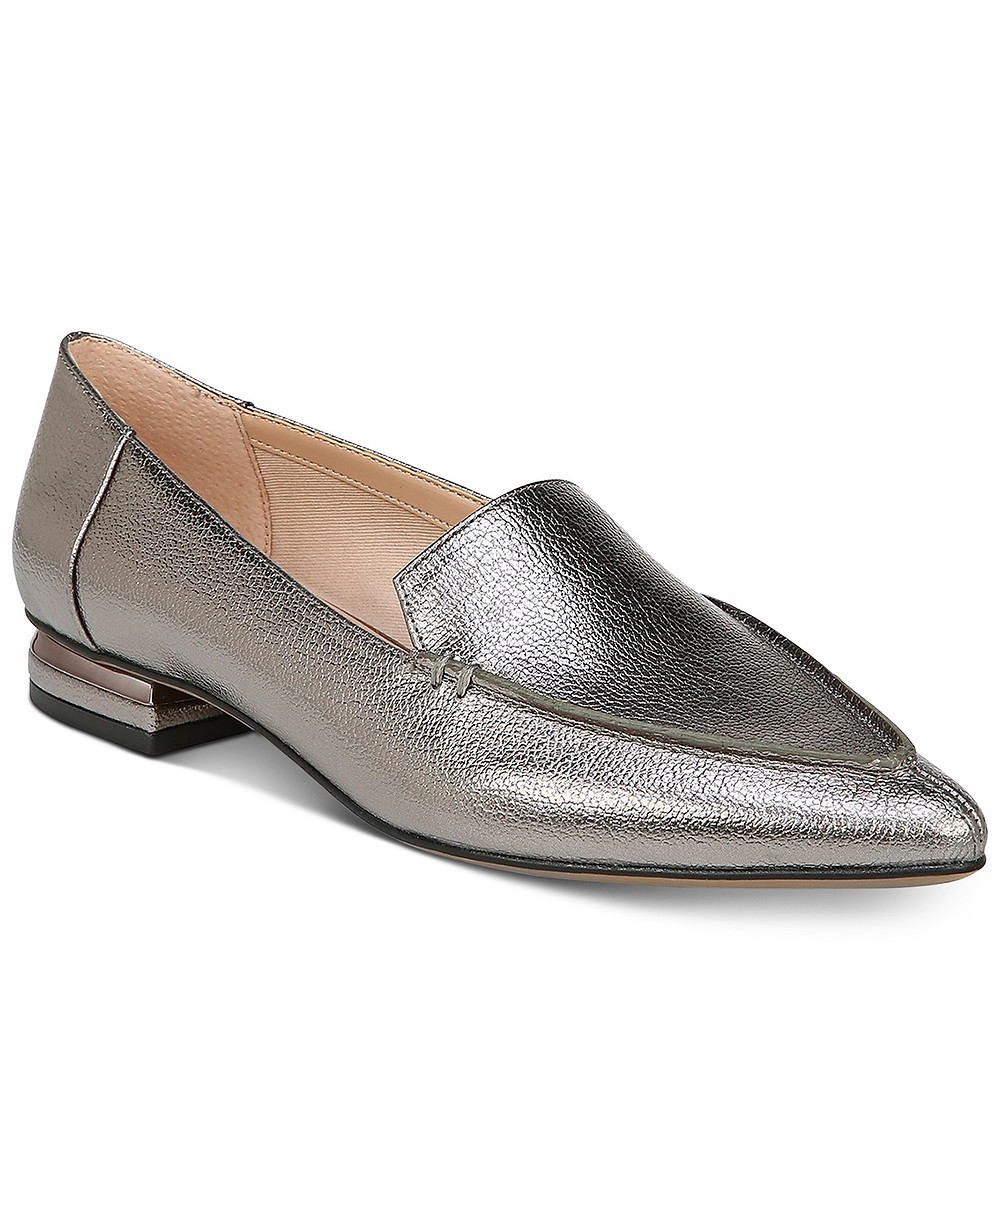 Franco Sarto Point Toe Loafer Metallic